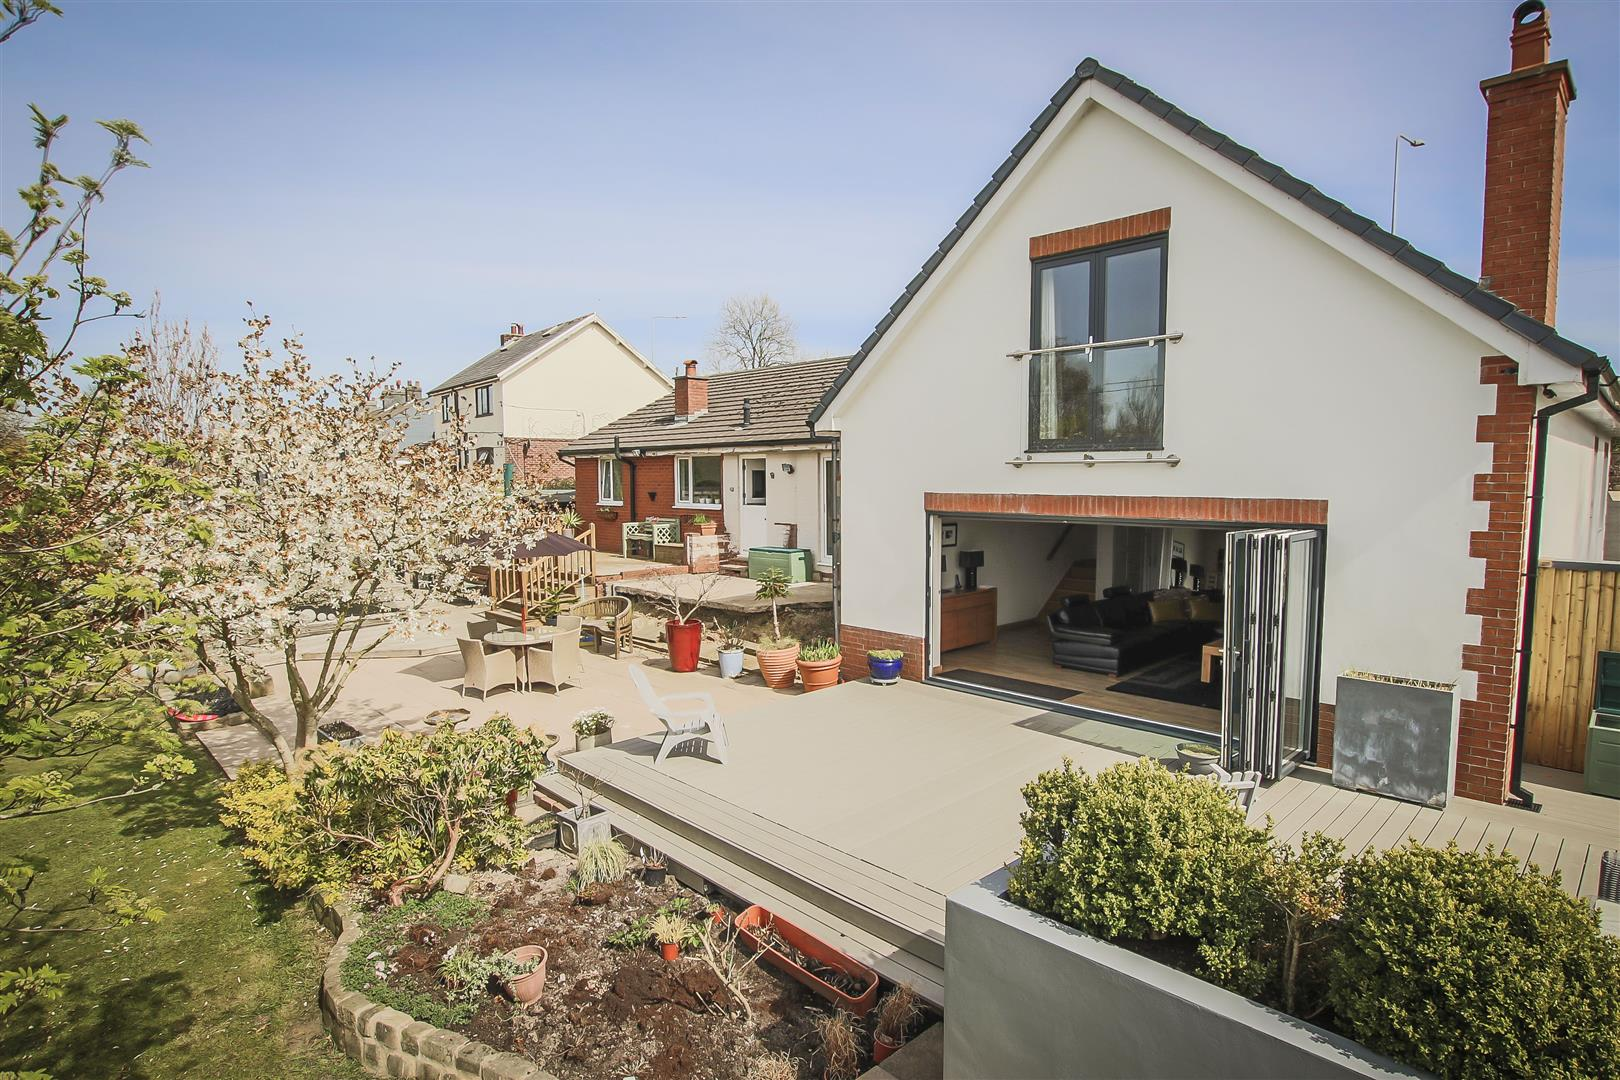 6 Bedroom House For Sale - Image 39